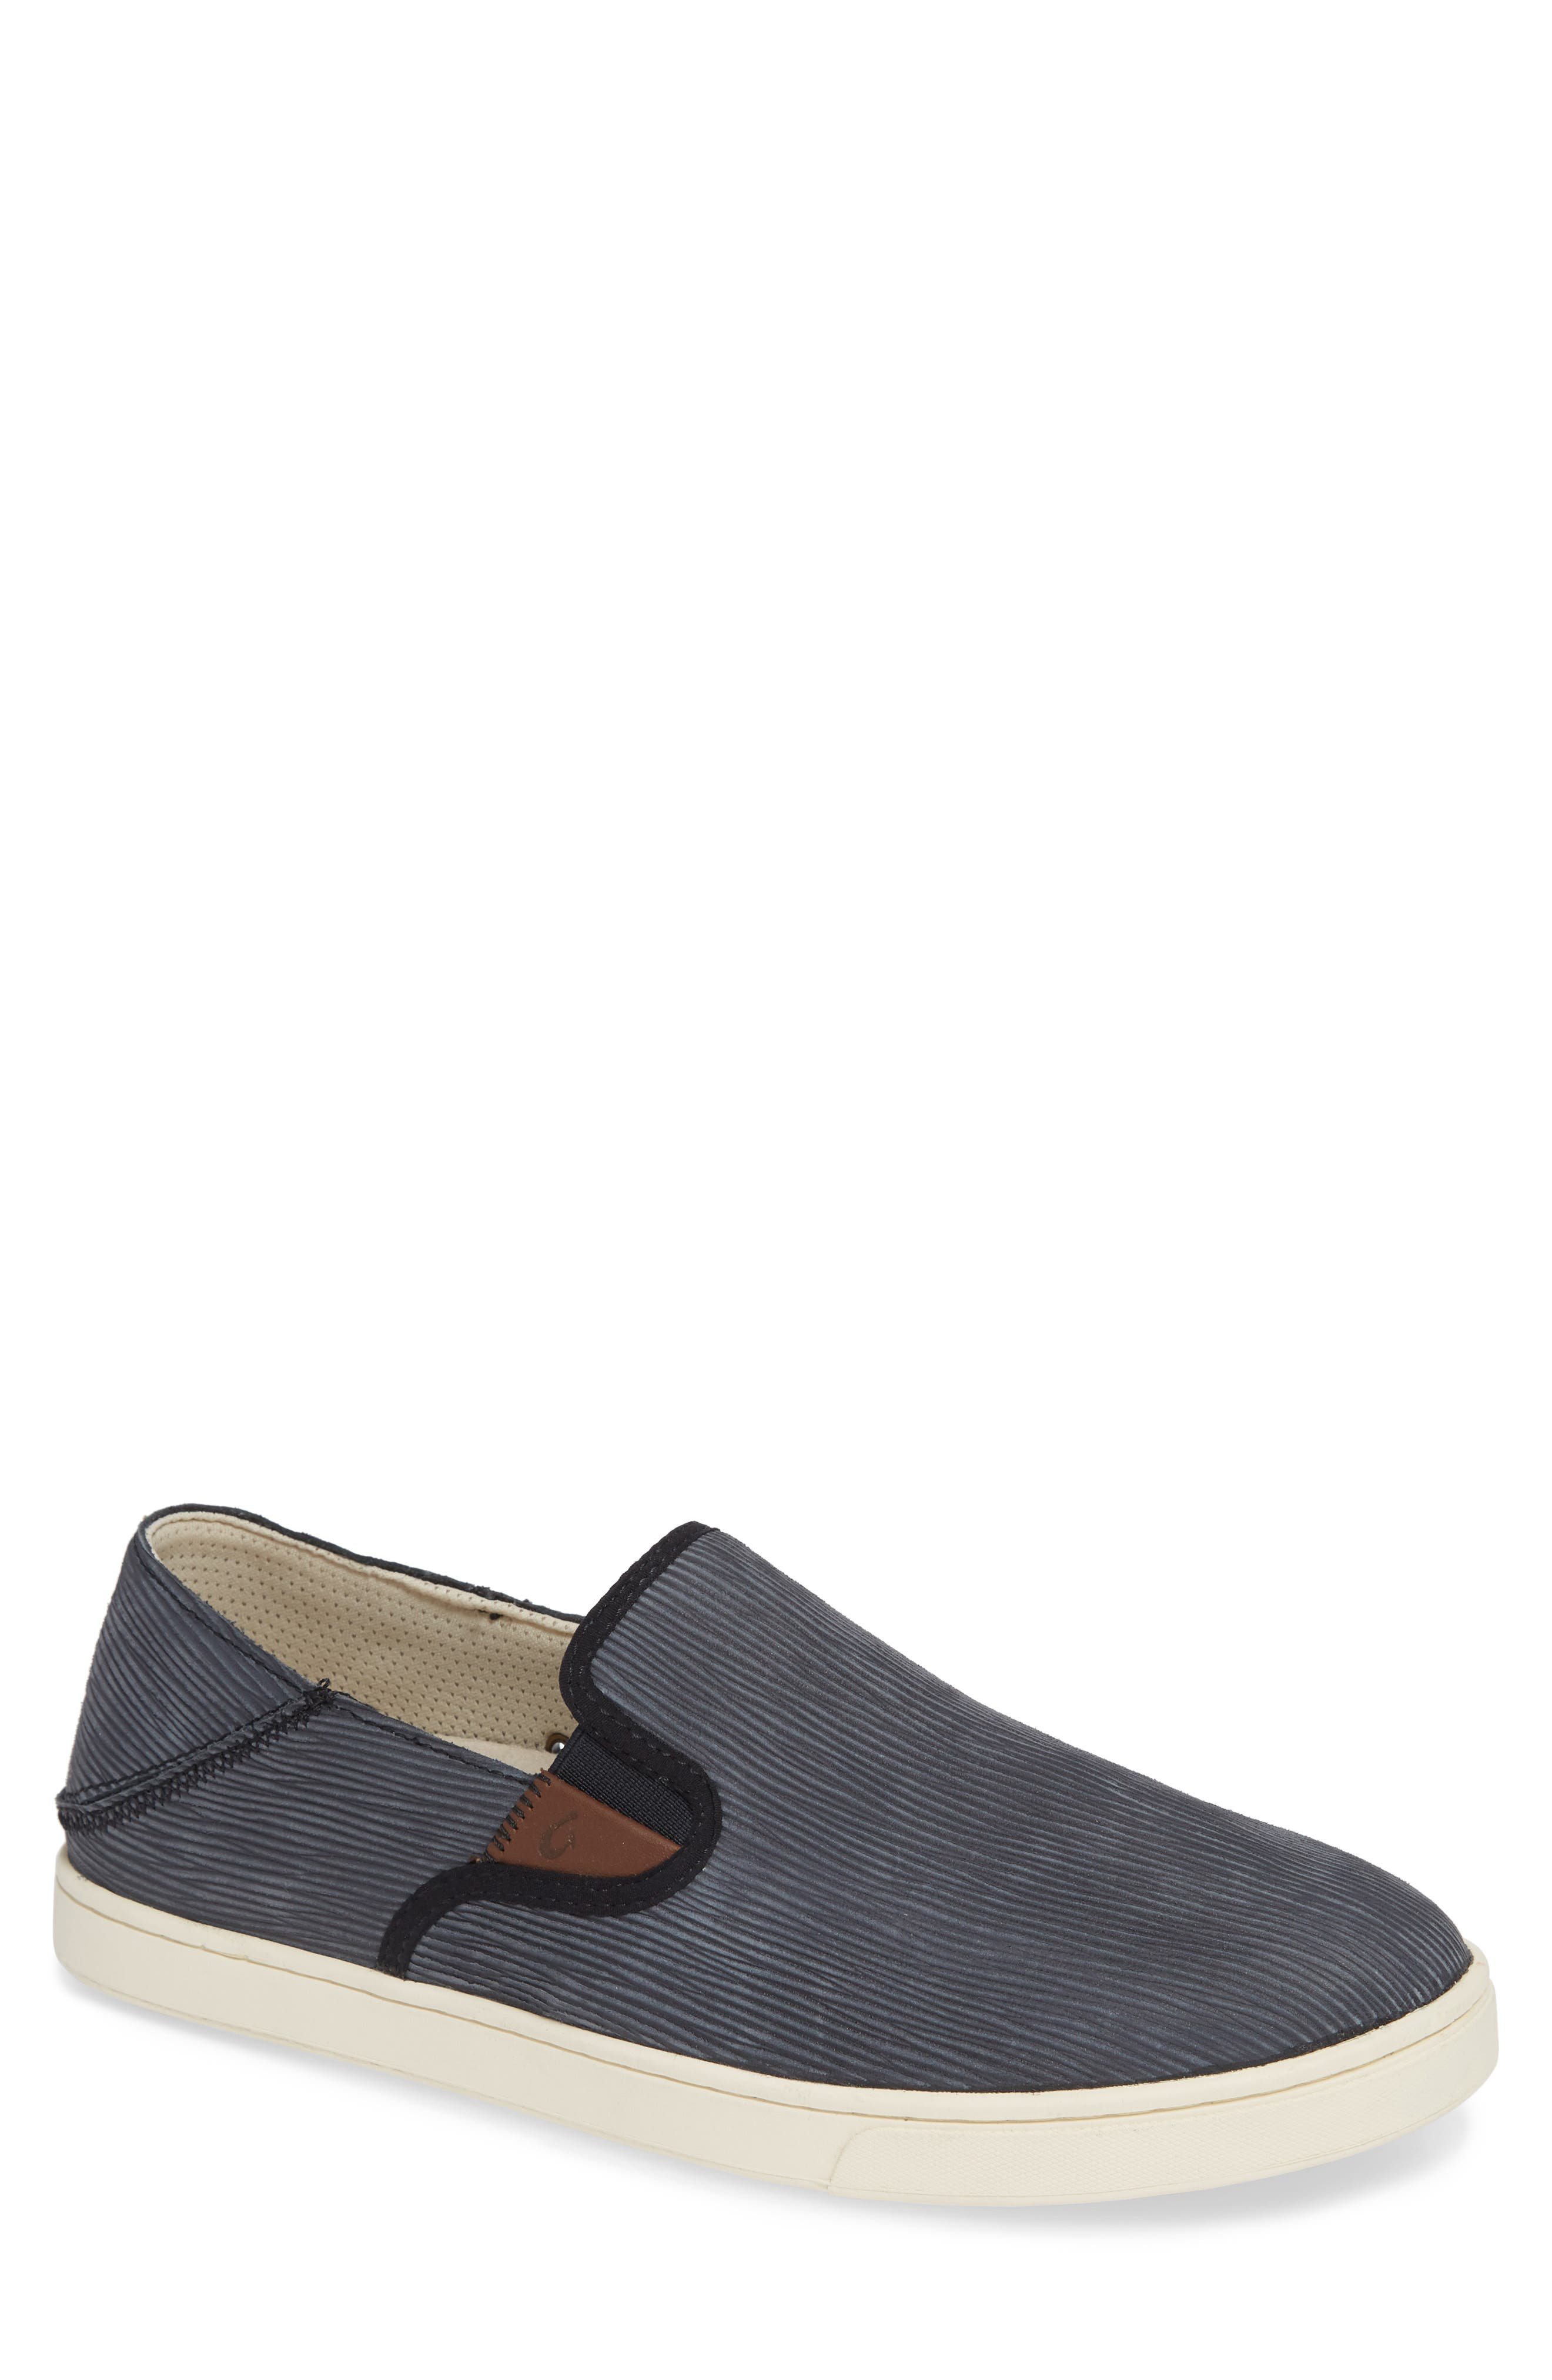 Kahu Kai Collapsible Slip-On Sneaker,                         Main,                         color, DARK SHADOW/ OFF WHITE LEATHER